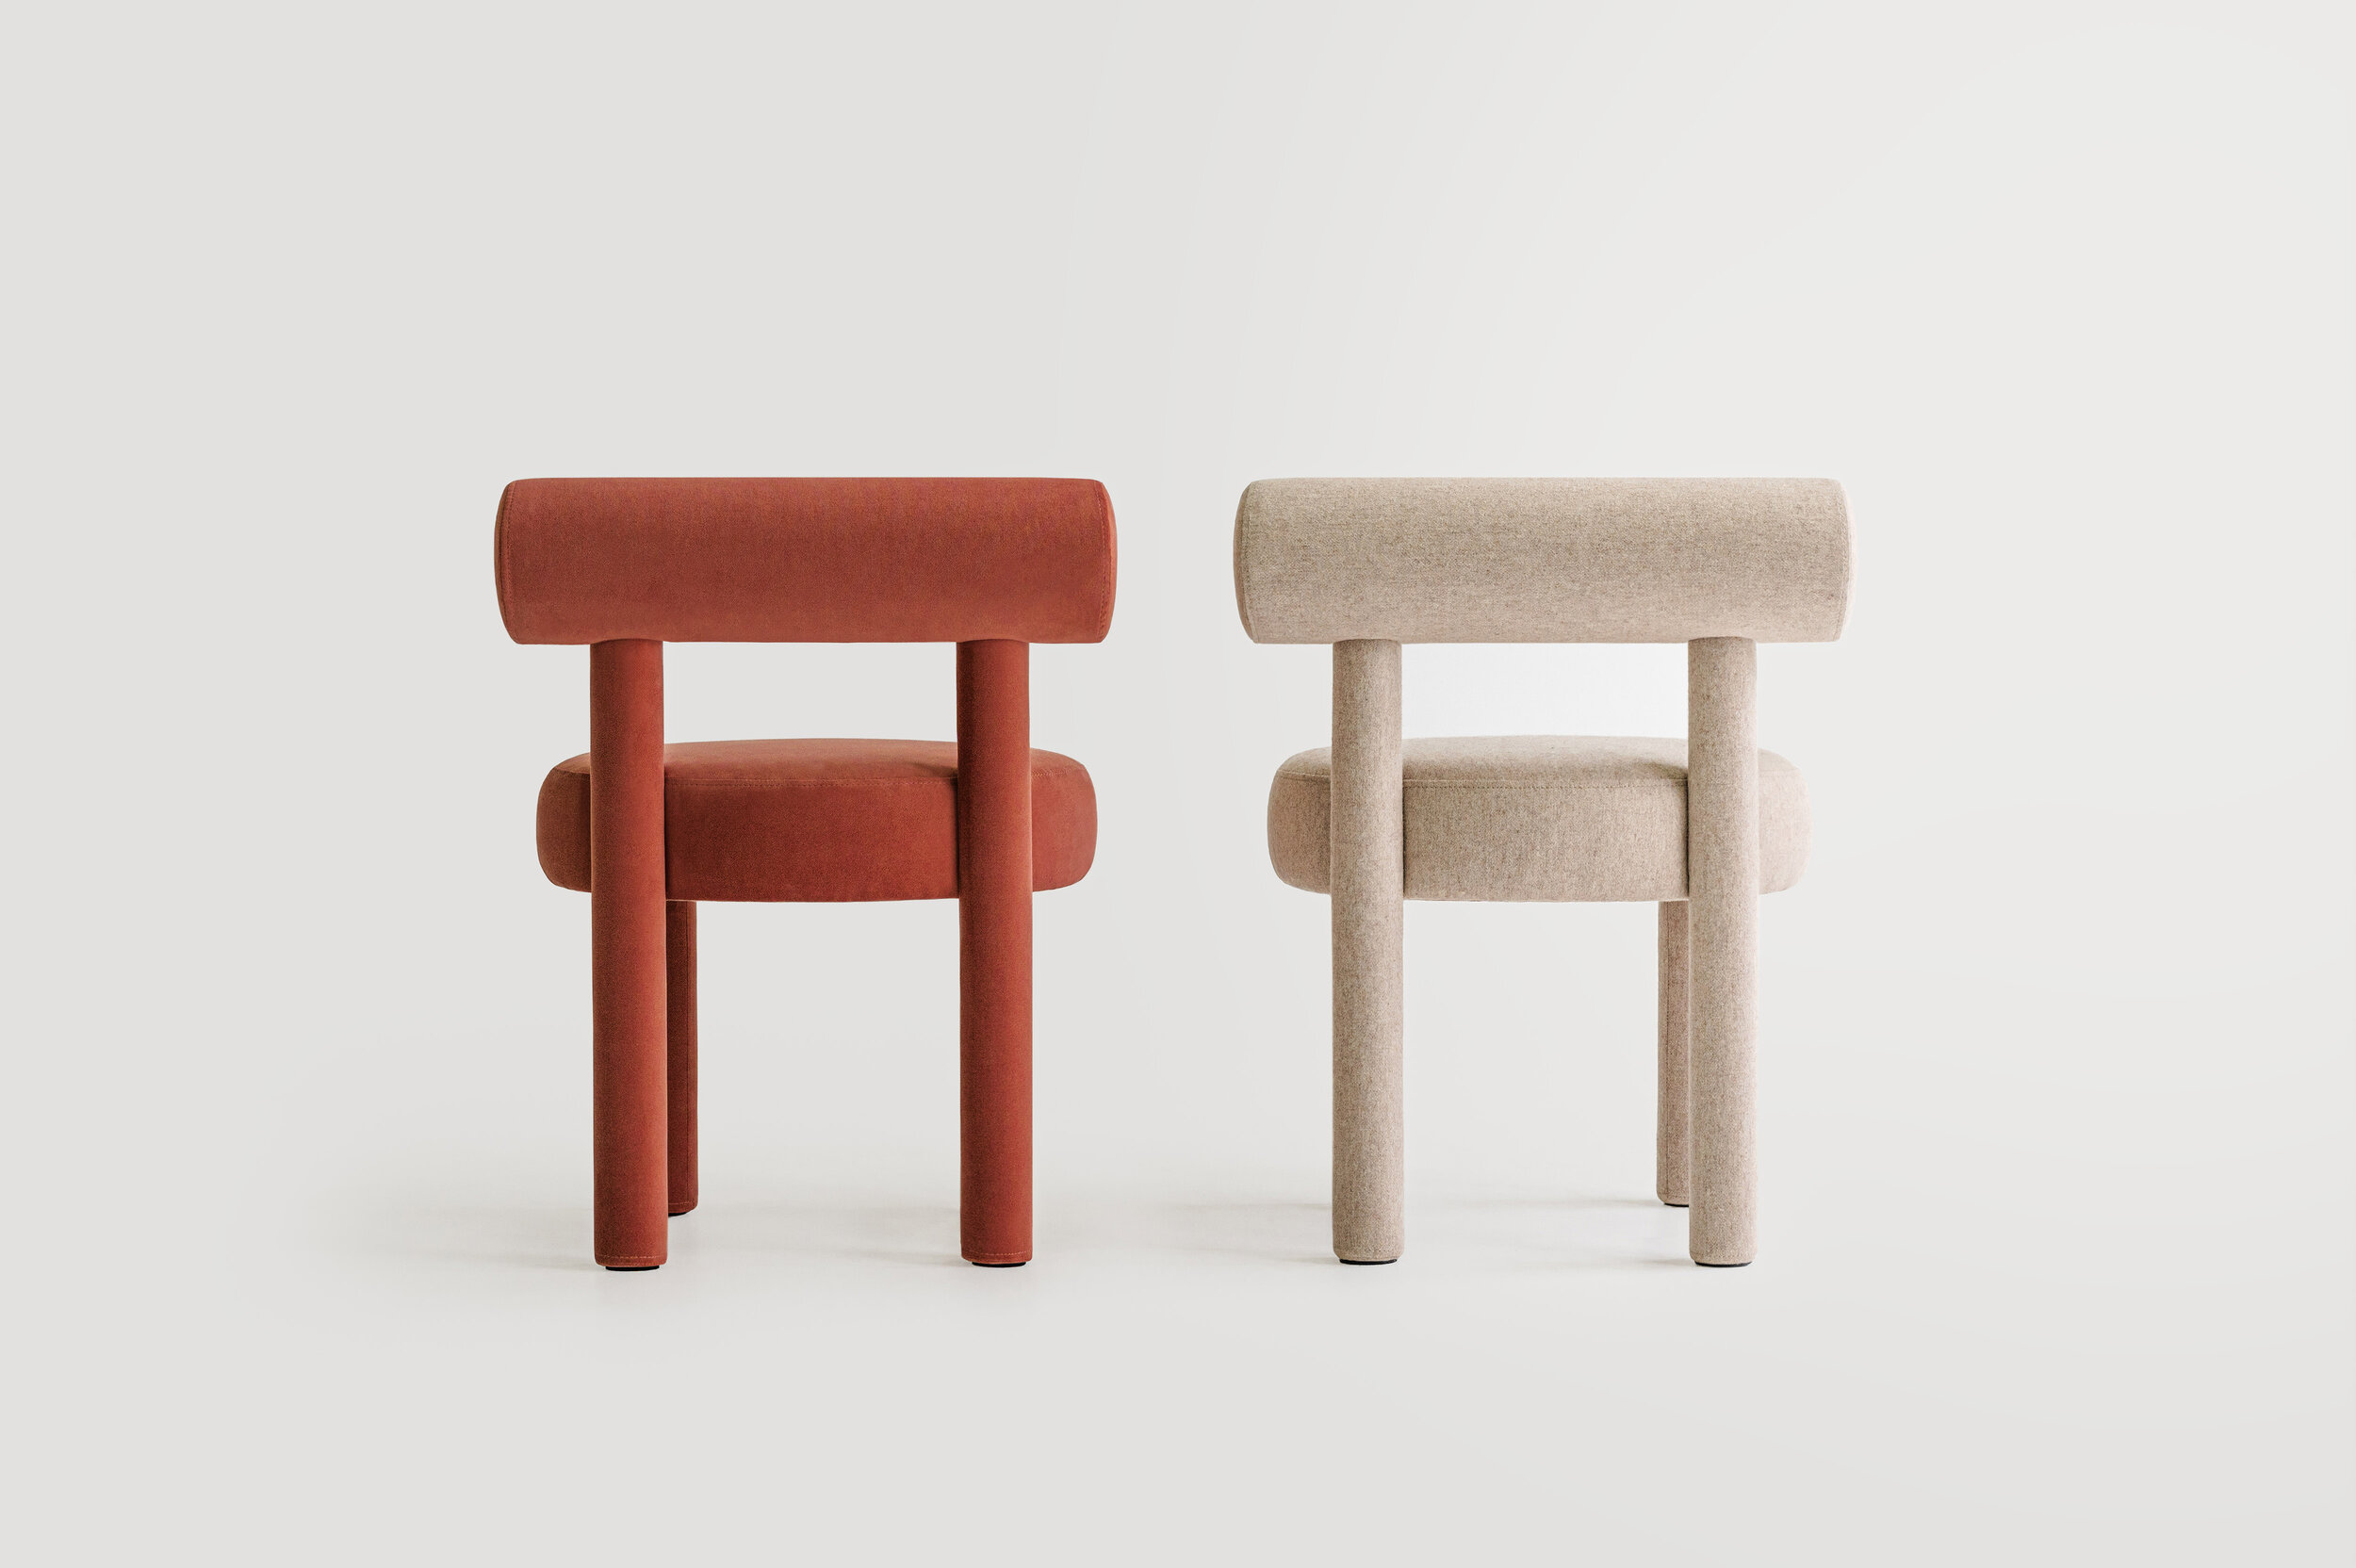 """Chair Gropius CS1 - New NOOM furniture collection is dedicated to the 100th anniversary of the founding of the Bauhaus School in Germany. Ideas of functionalism and conciseness, the combination of craft and art, buildings and objects formed by a composition of simple geometric shapes, are still relevant.   NOOM furniture is a tribute to the great thinkers who formed the modernist principles and brought them to life. The designer has """"gathered"""" the shape of this chair from the cylinders.  All products in the collection are called by names of famous modernist artists and architects. 